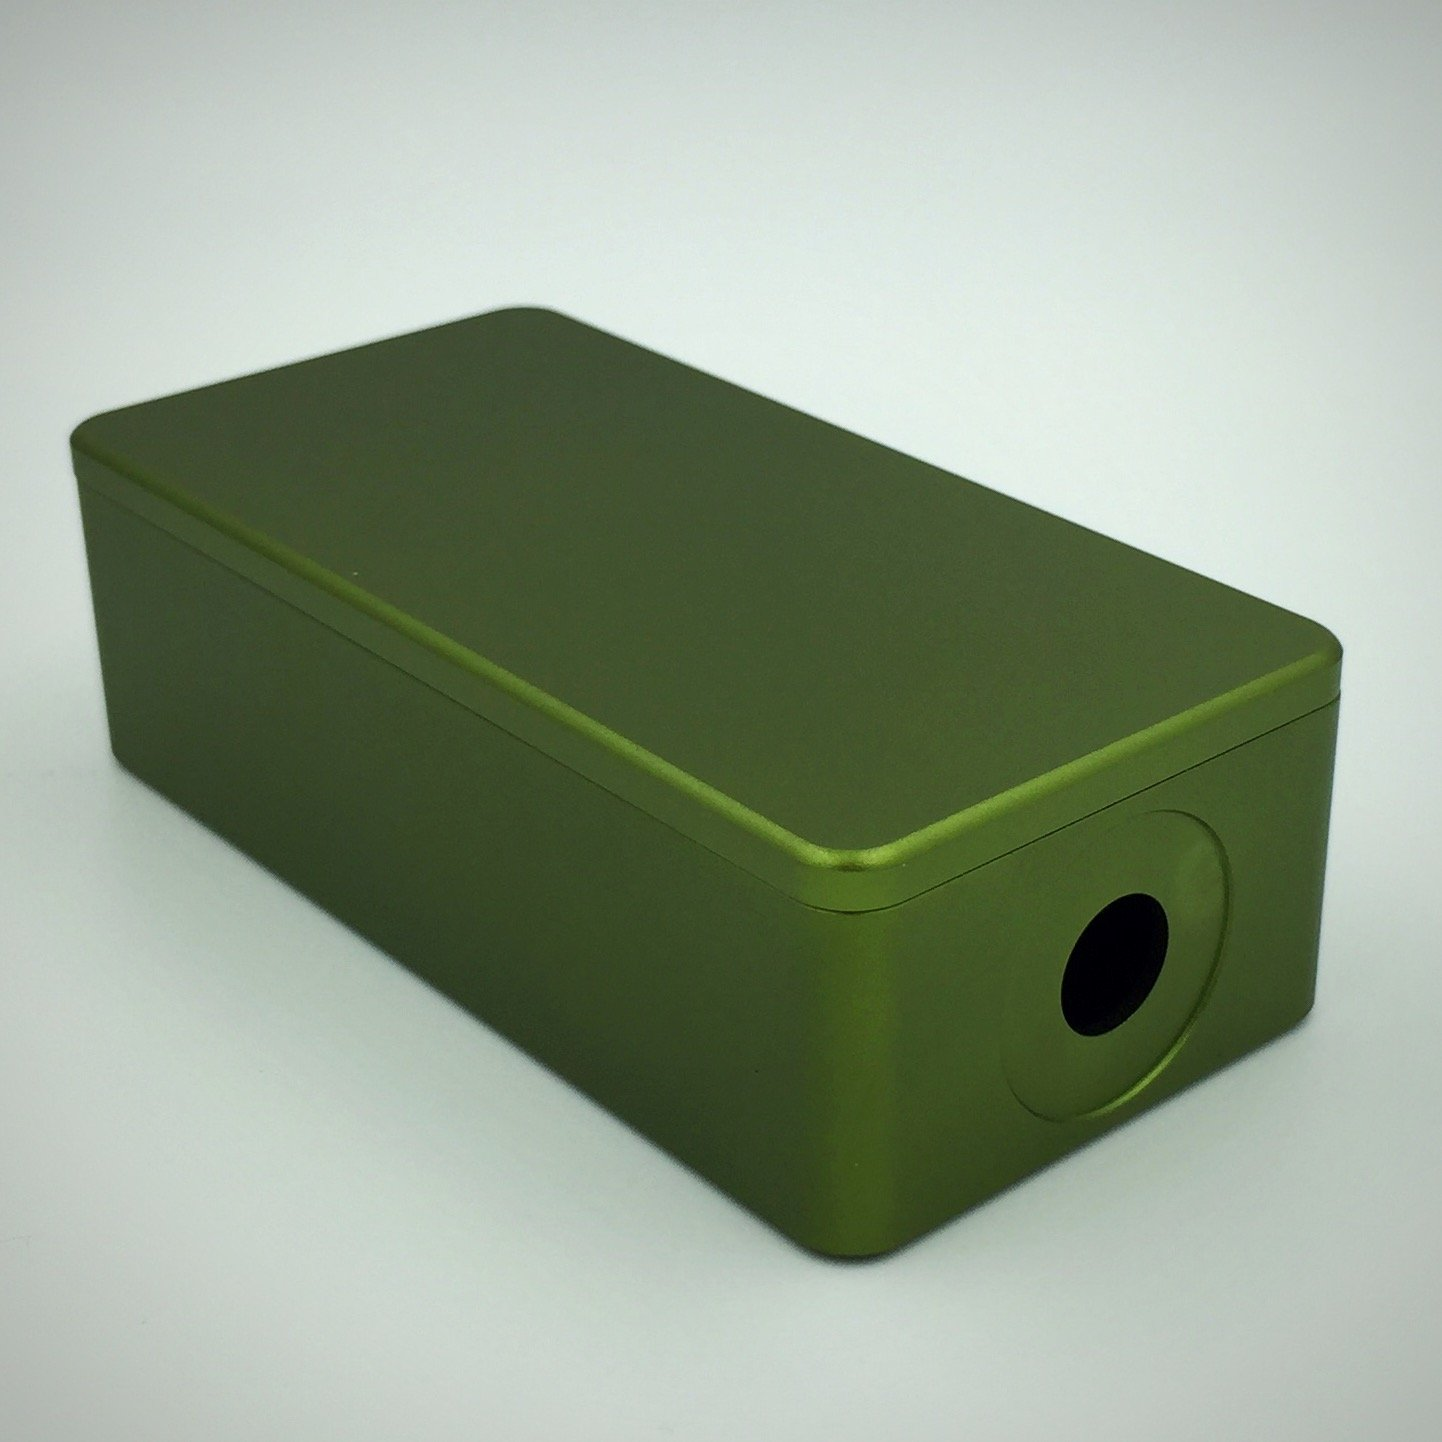 "BMG Mods ""1590g Tall"" CNC Milled Anodized Aluminum 18650 Battery Enclosure: Olive Green (Satin Finish)"